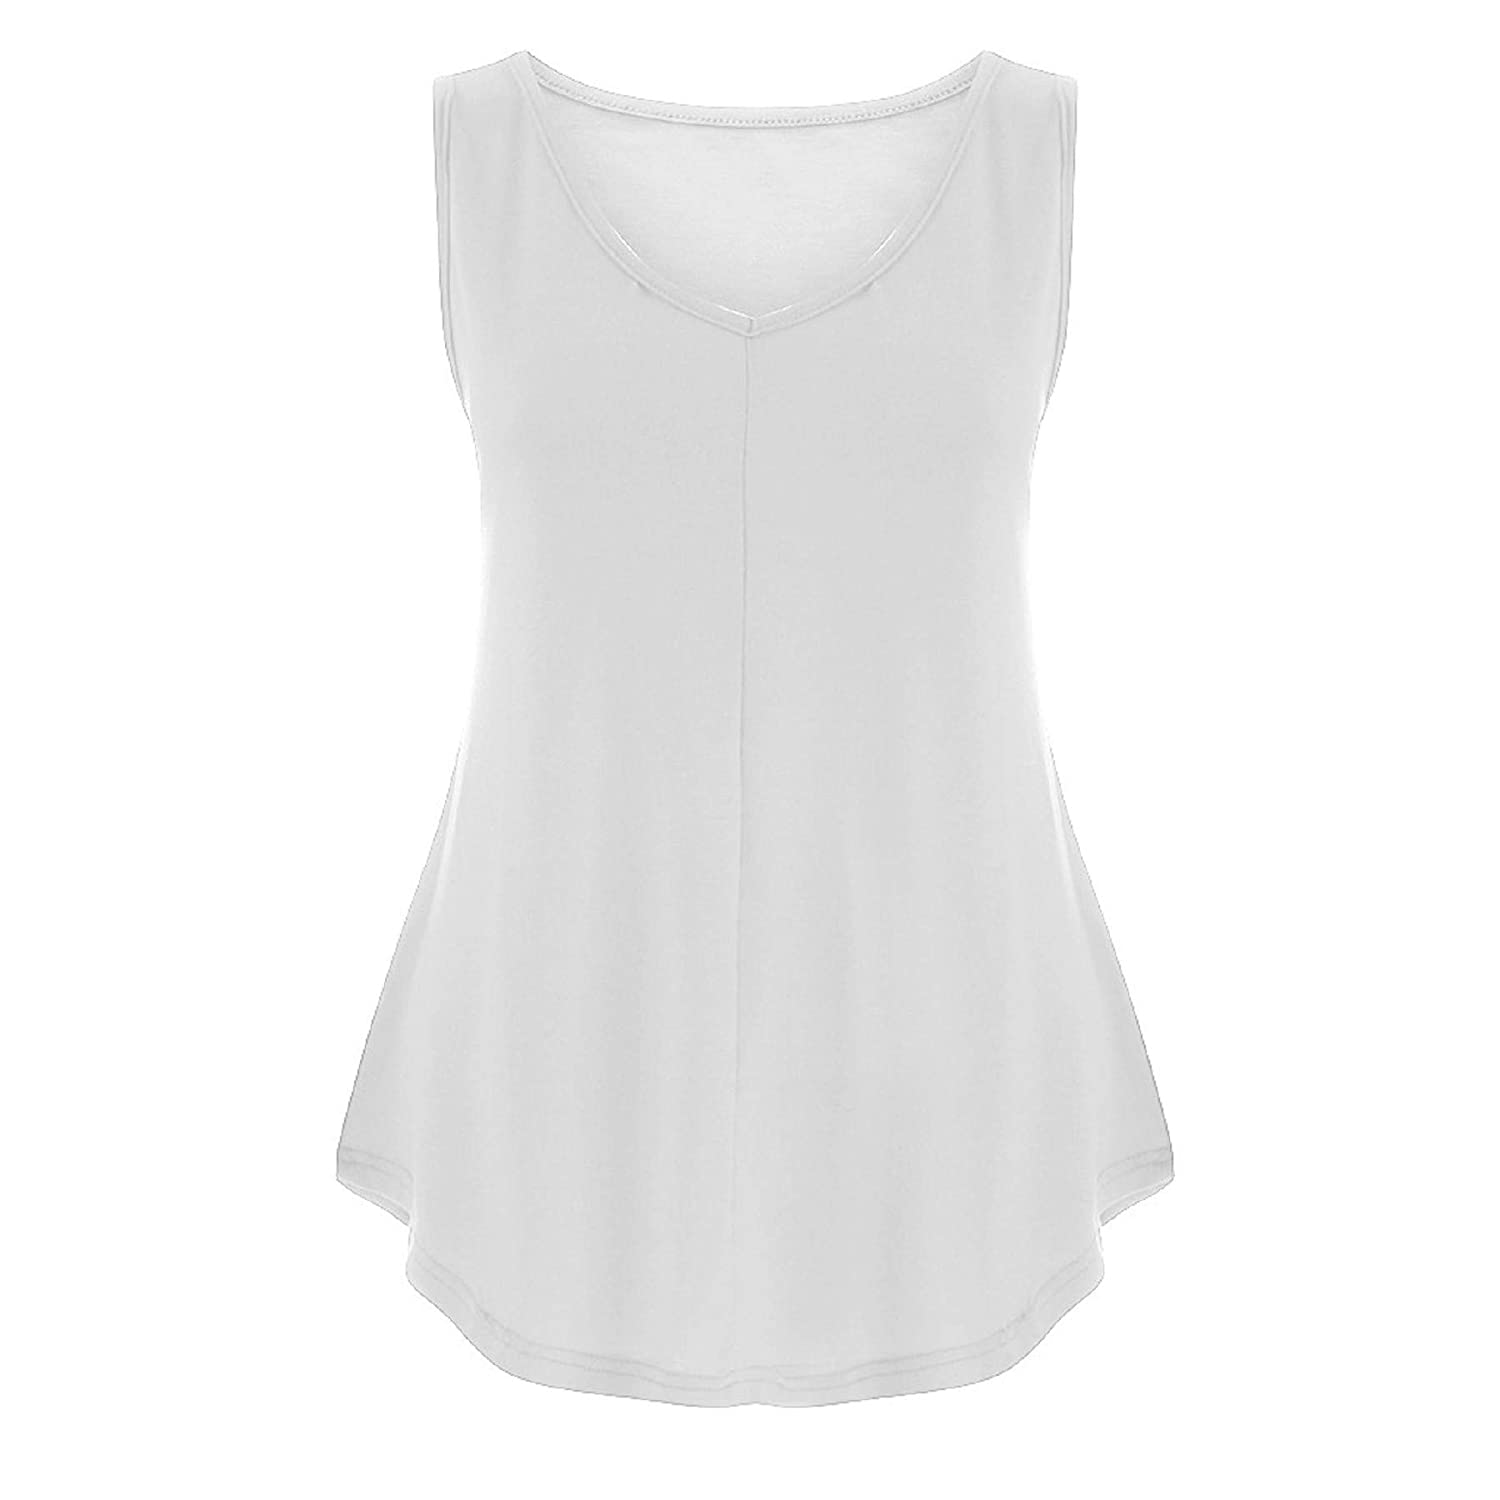 Plus Size Womens Summer Sleeveless Solid Tank Top Casual Loose Vest Top Daily Work Baggy T Shirt Workout Blouse